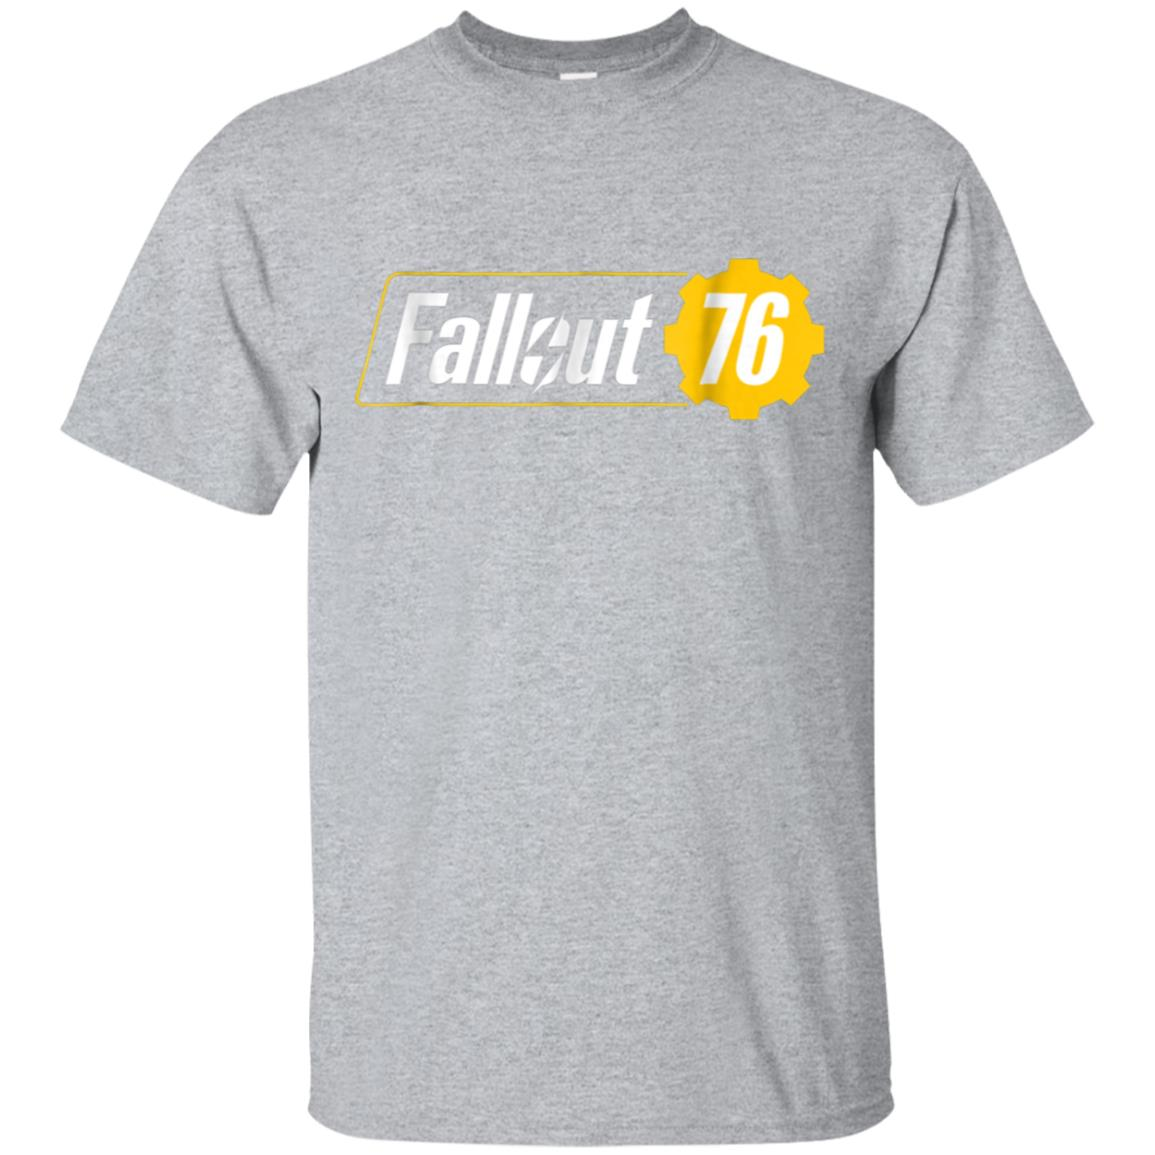 Fall out 76 Graphic Logo t-shirt for men women 99promocode